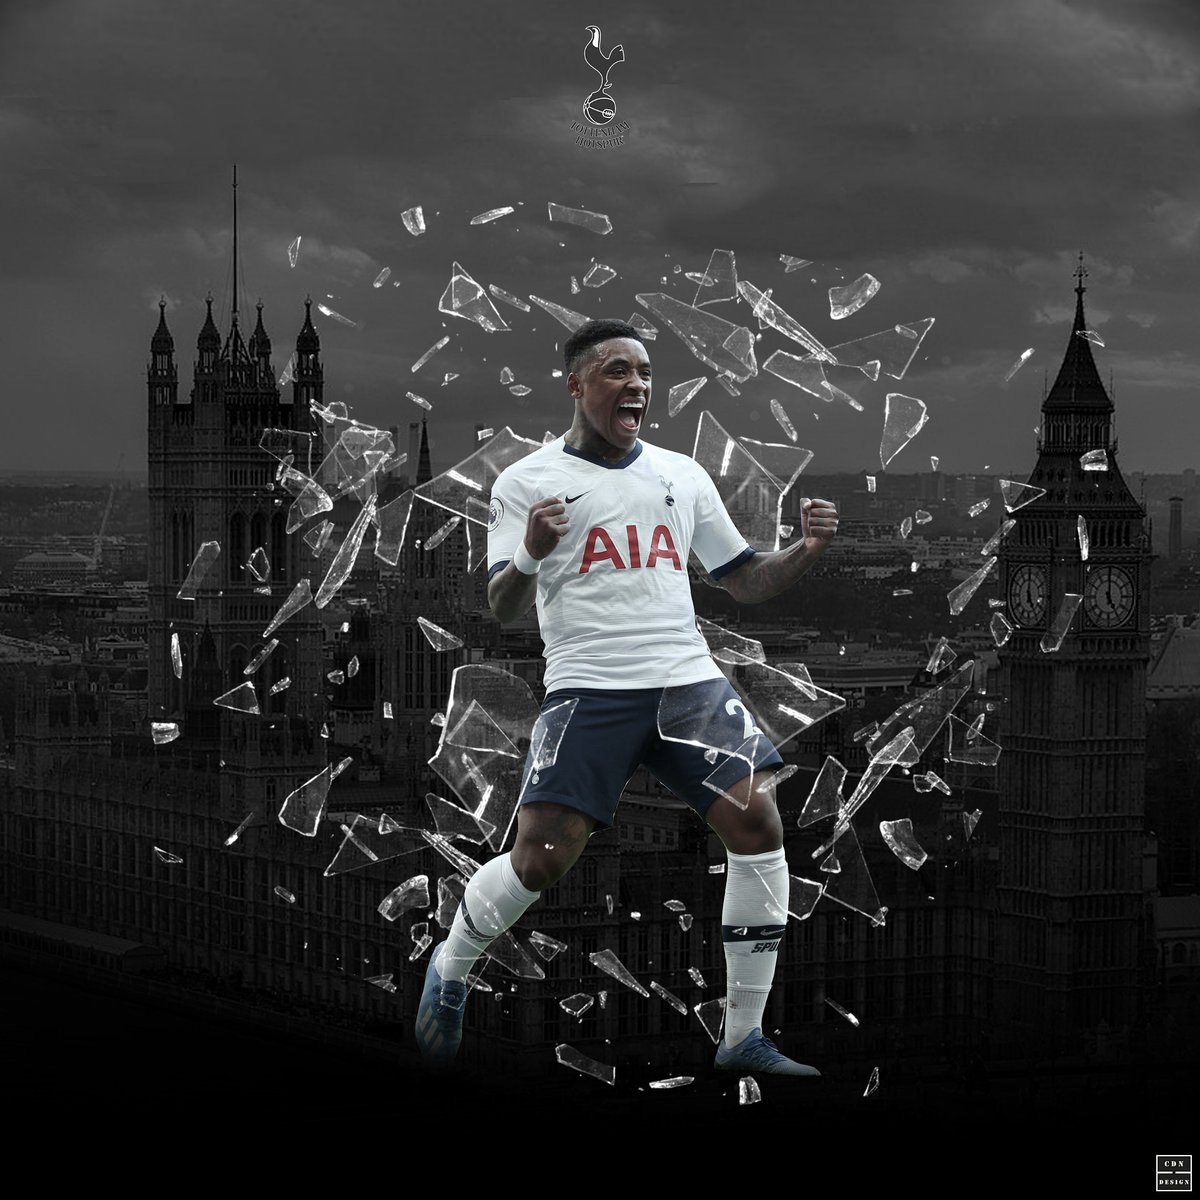 Steven Bergwijn 🇳🇱 #Tottenham #Spurs #Bergwijn #London #TottenhamHotspurs #Football #Foot #Football #Sport #COYS #Design #Photoshop #FootballPlayer #AdobePhotoshop #England #l4l #f4f